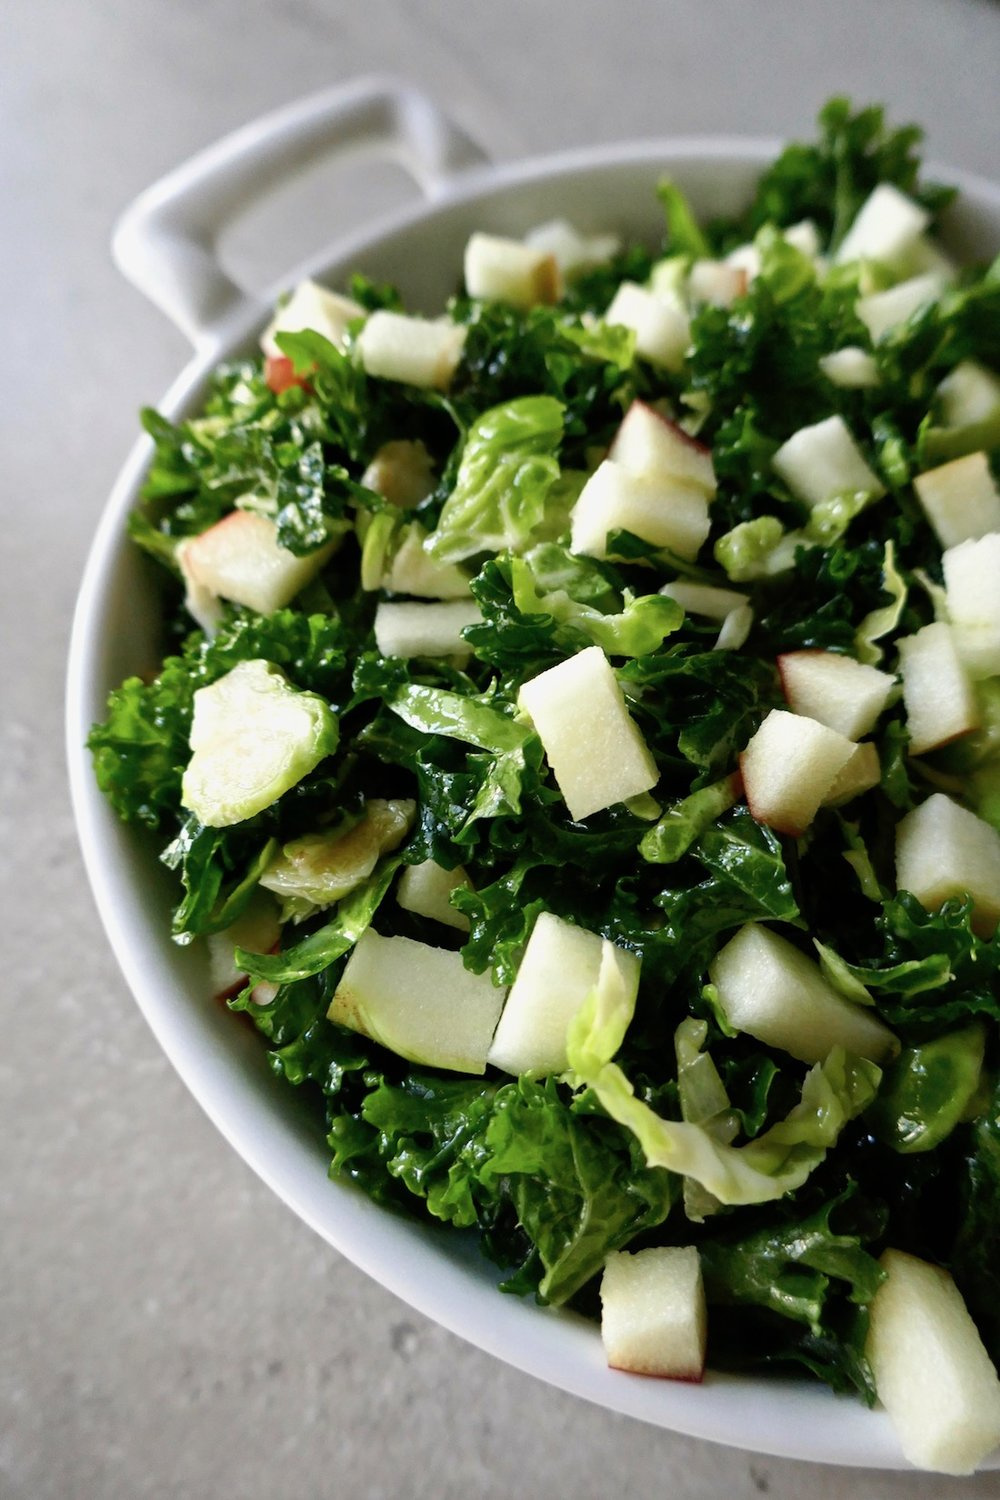 Vegan kale brussels salad - the perfect holiday side salad